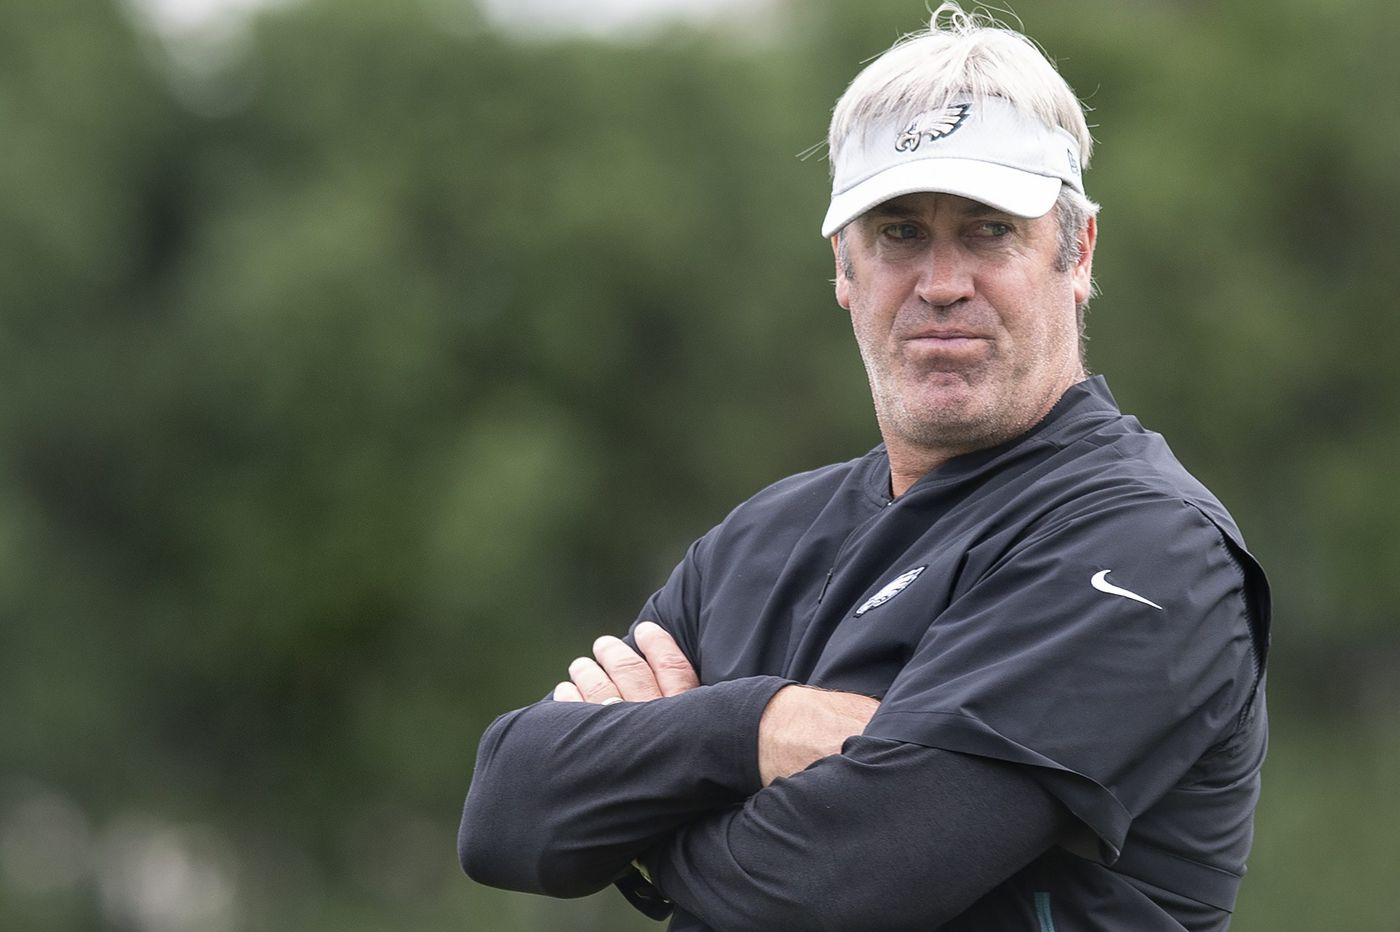 Doug Pederson's run-pass imbalance is a symptom and not a cause of the Eagles' struggles